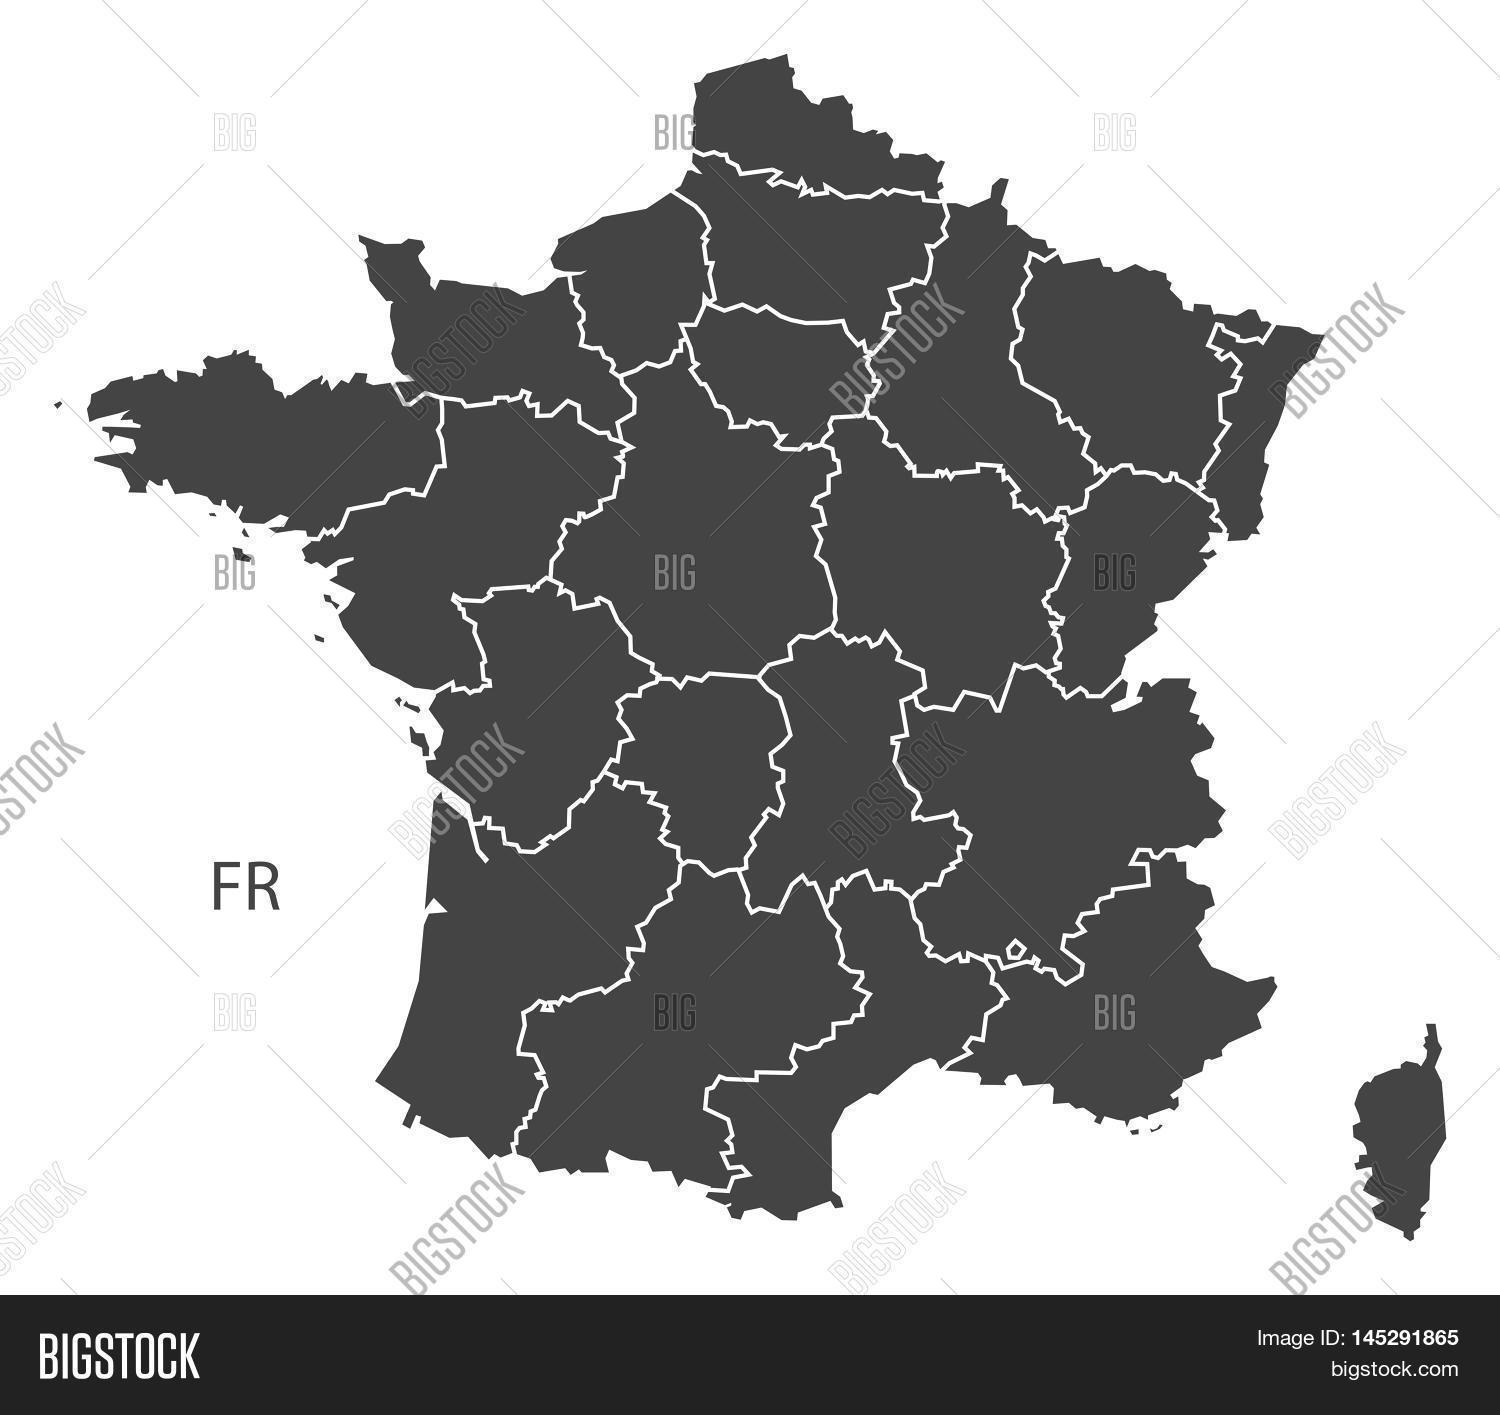 France Map With Regions.France Map Regions Vector Photo Free Trial Bigstock